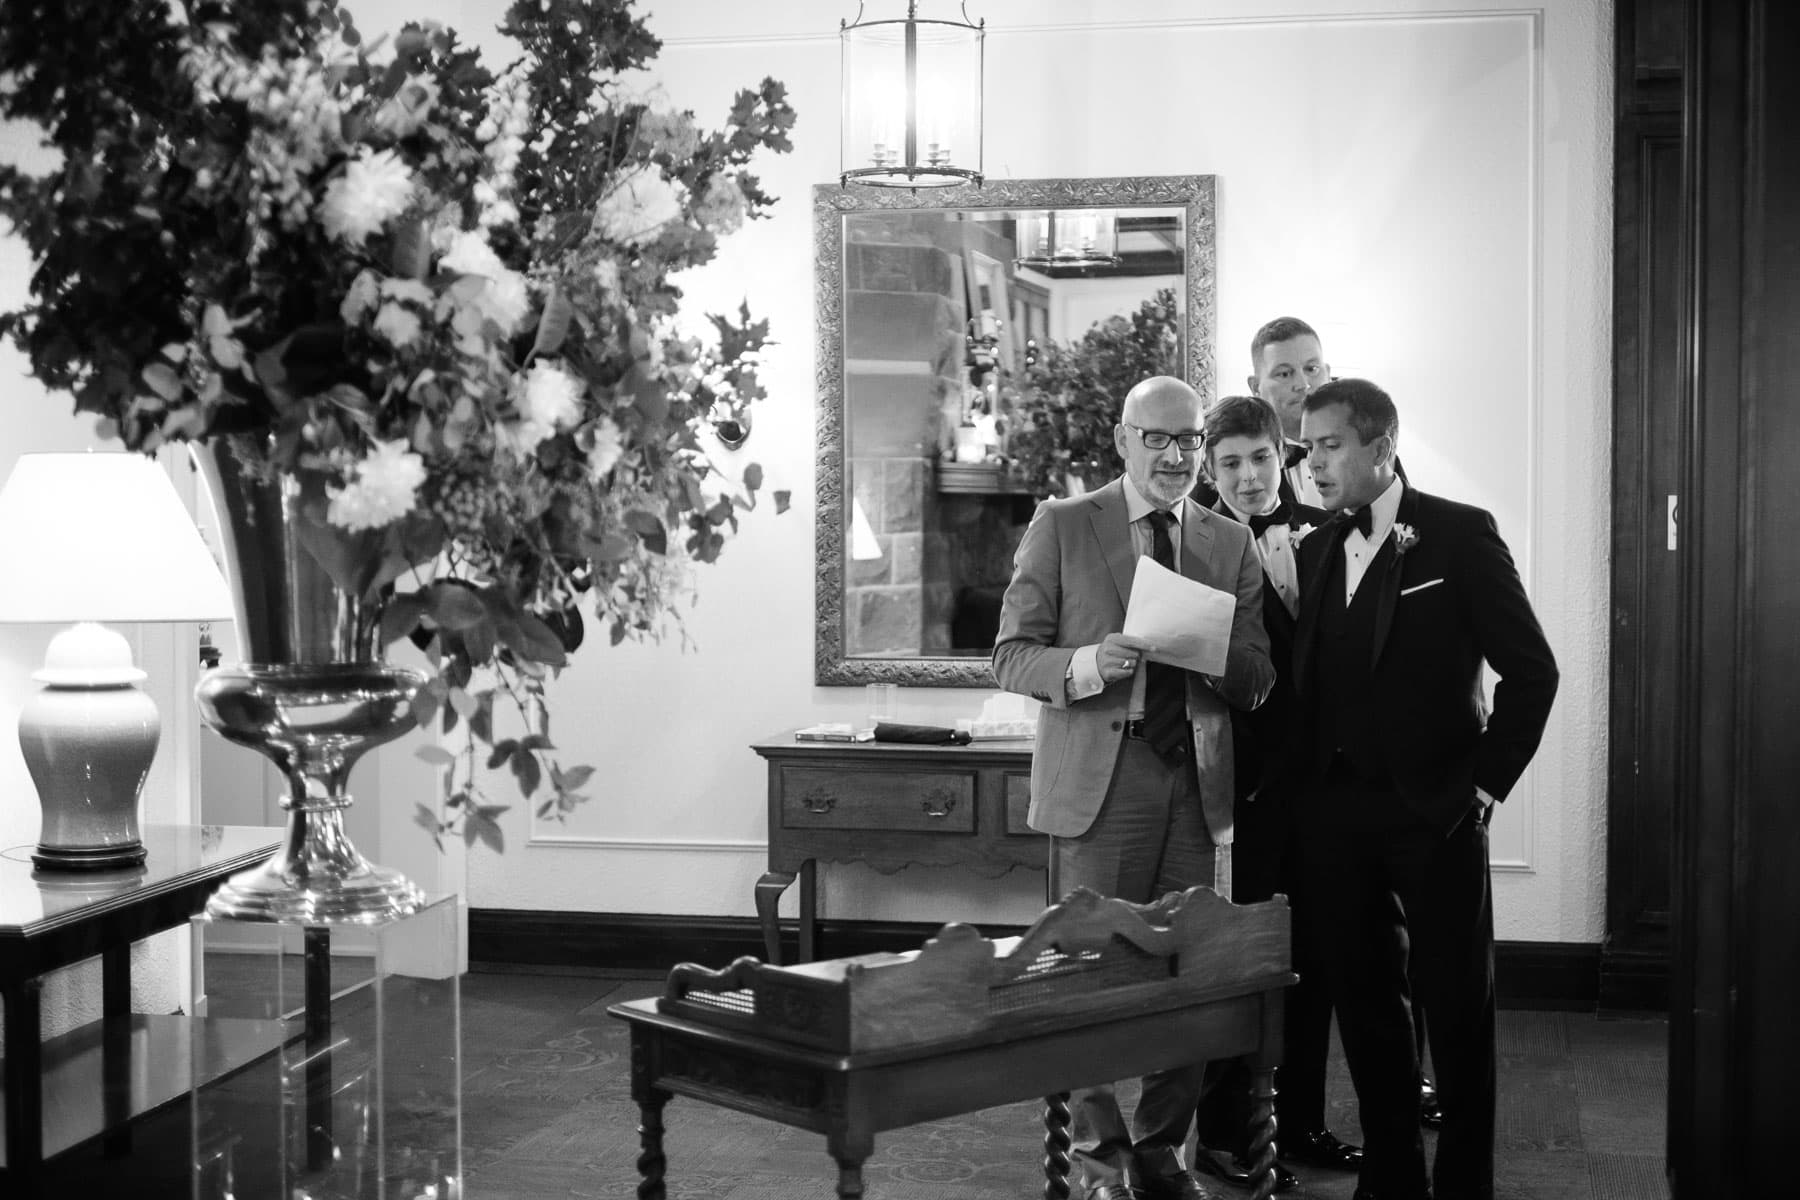 The officiant goes over the last details with the groom just before the ceremony begins at this Boulevard Club wedding in Toronto.